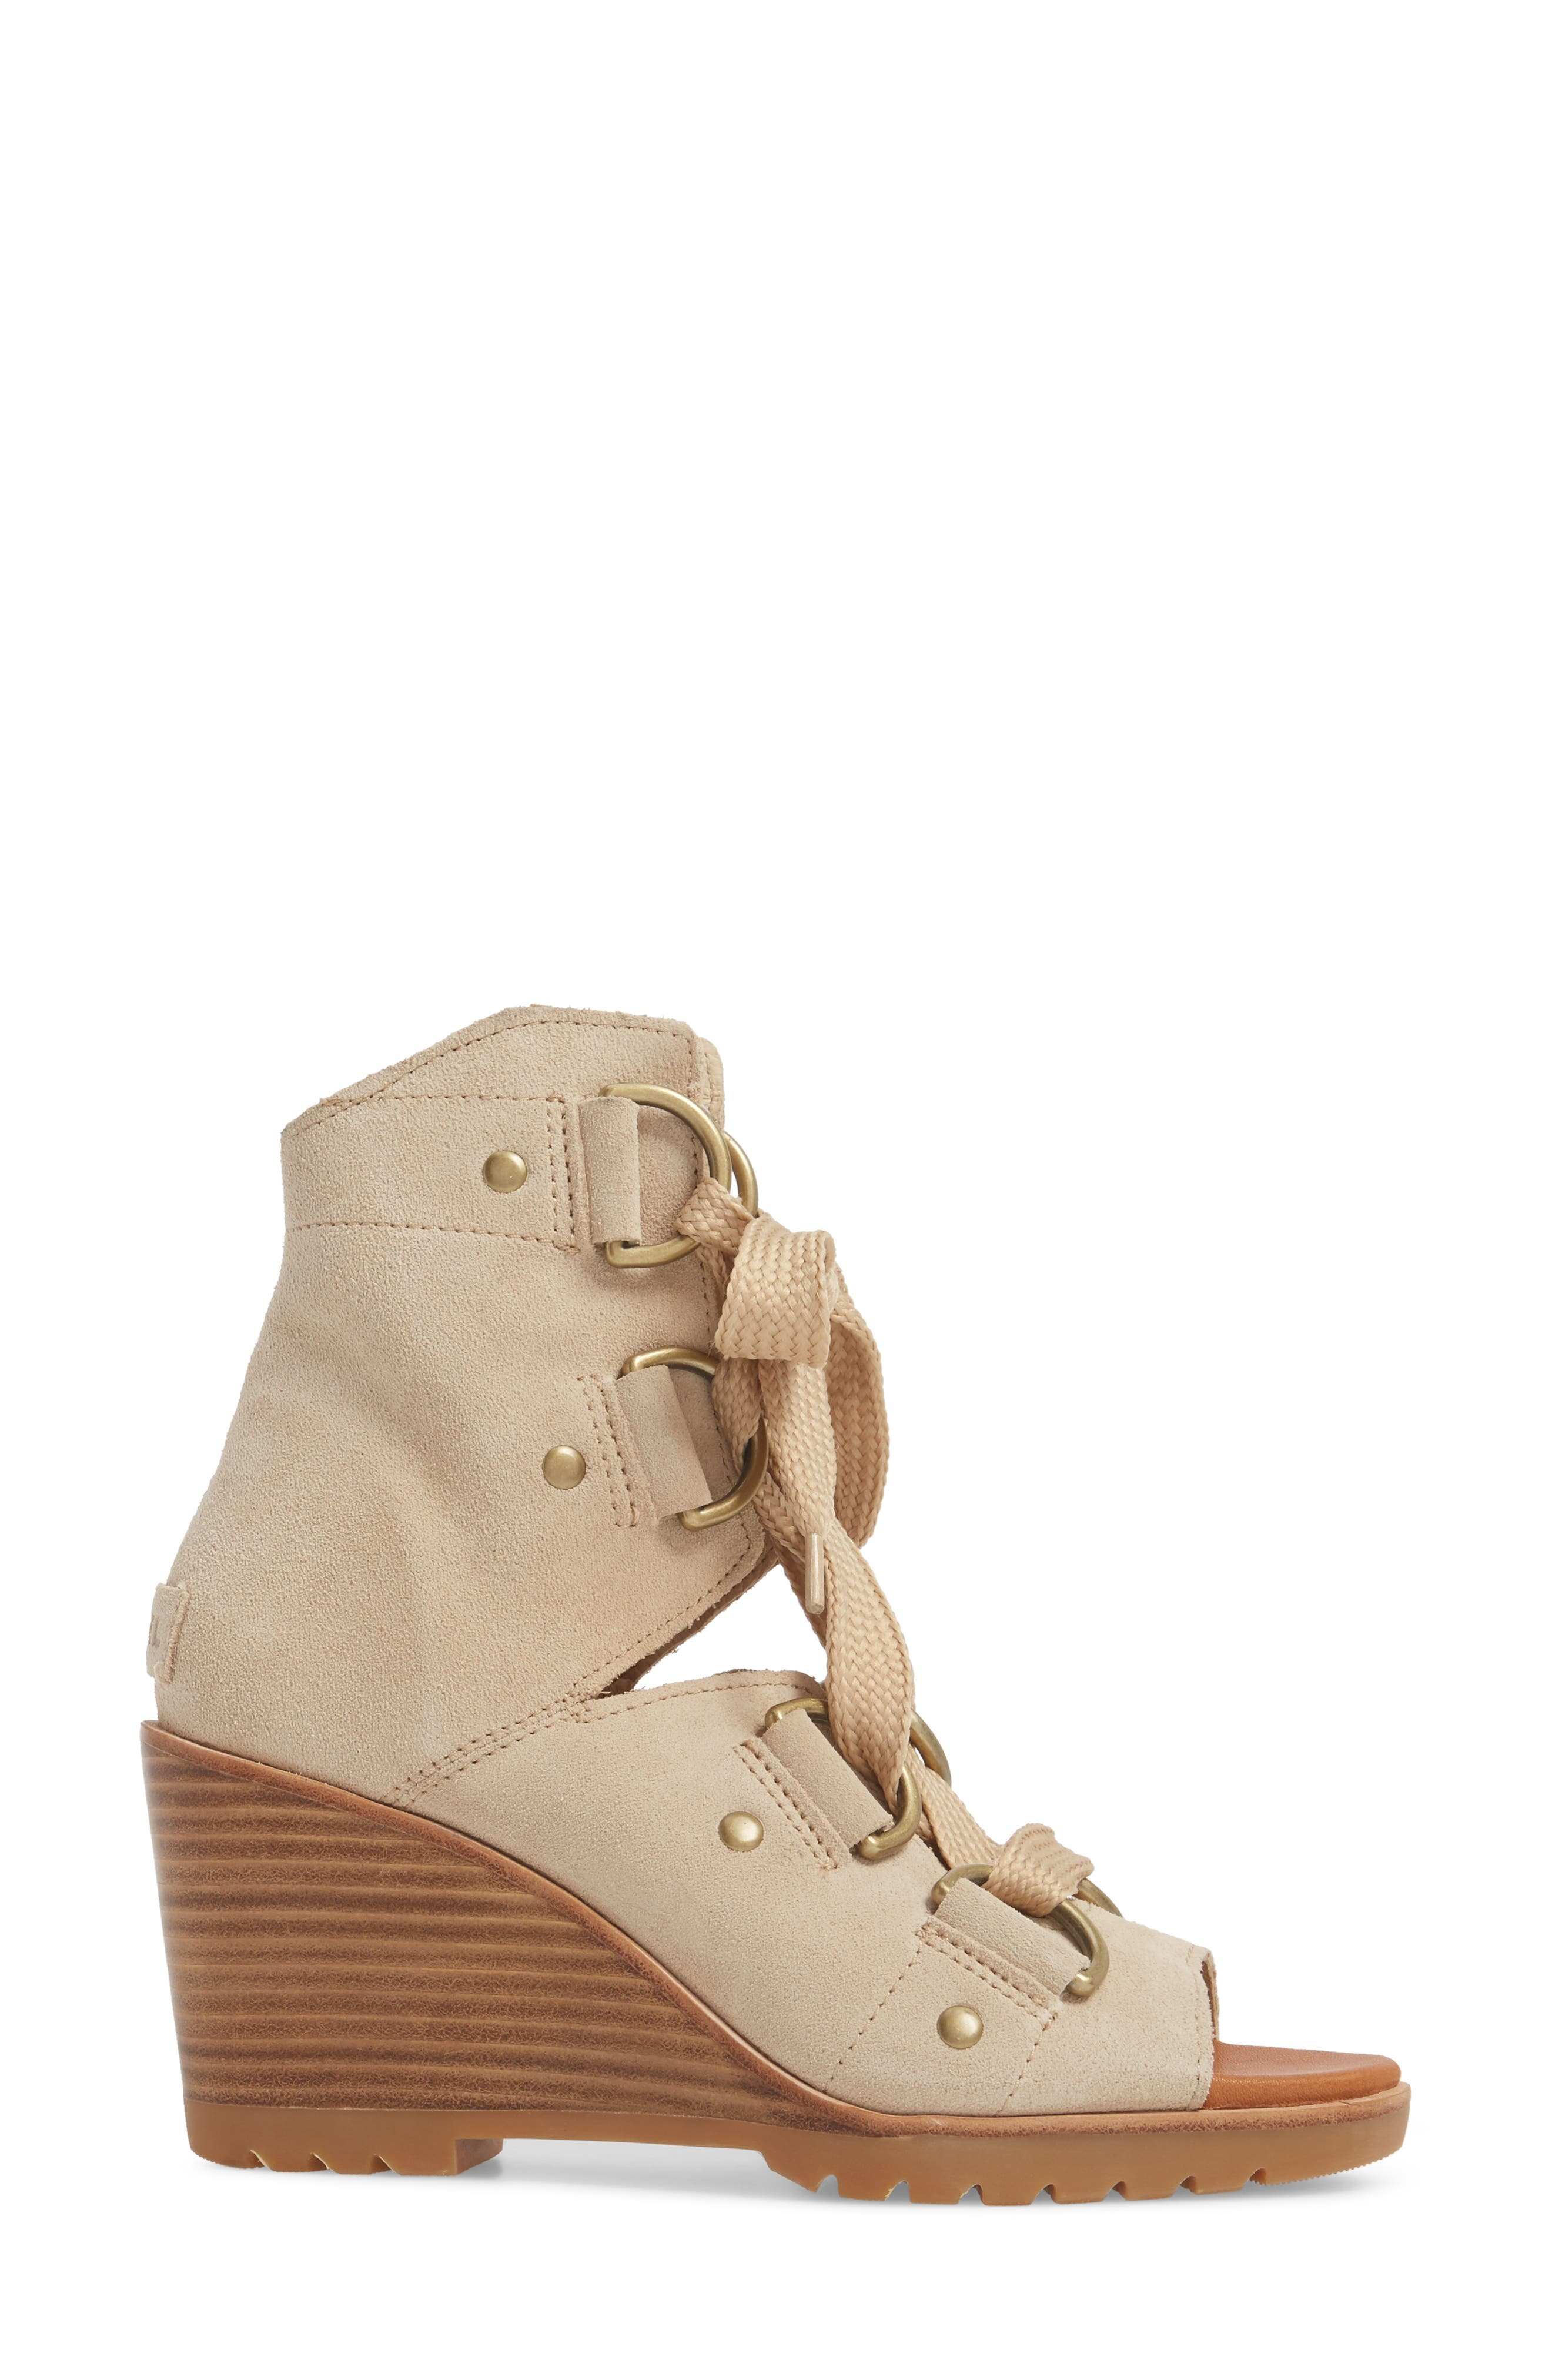 After Hours Wedge Bootie,                             Alternate thumbnail 3, color,                             250